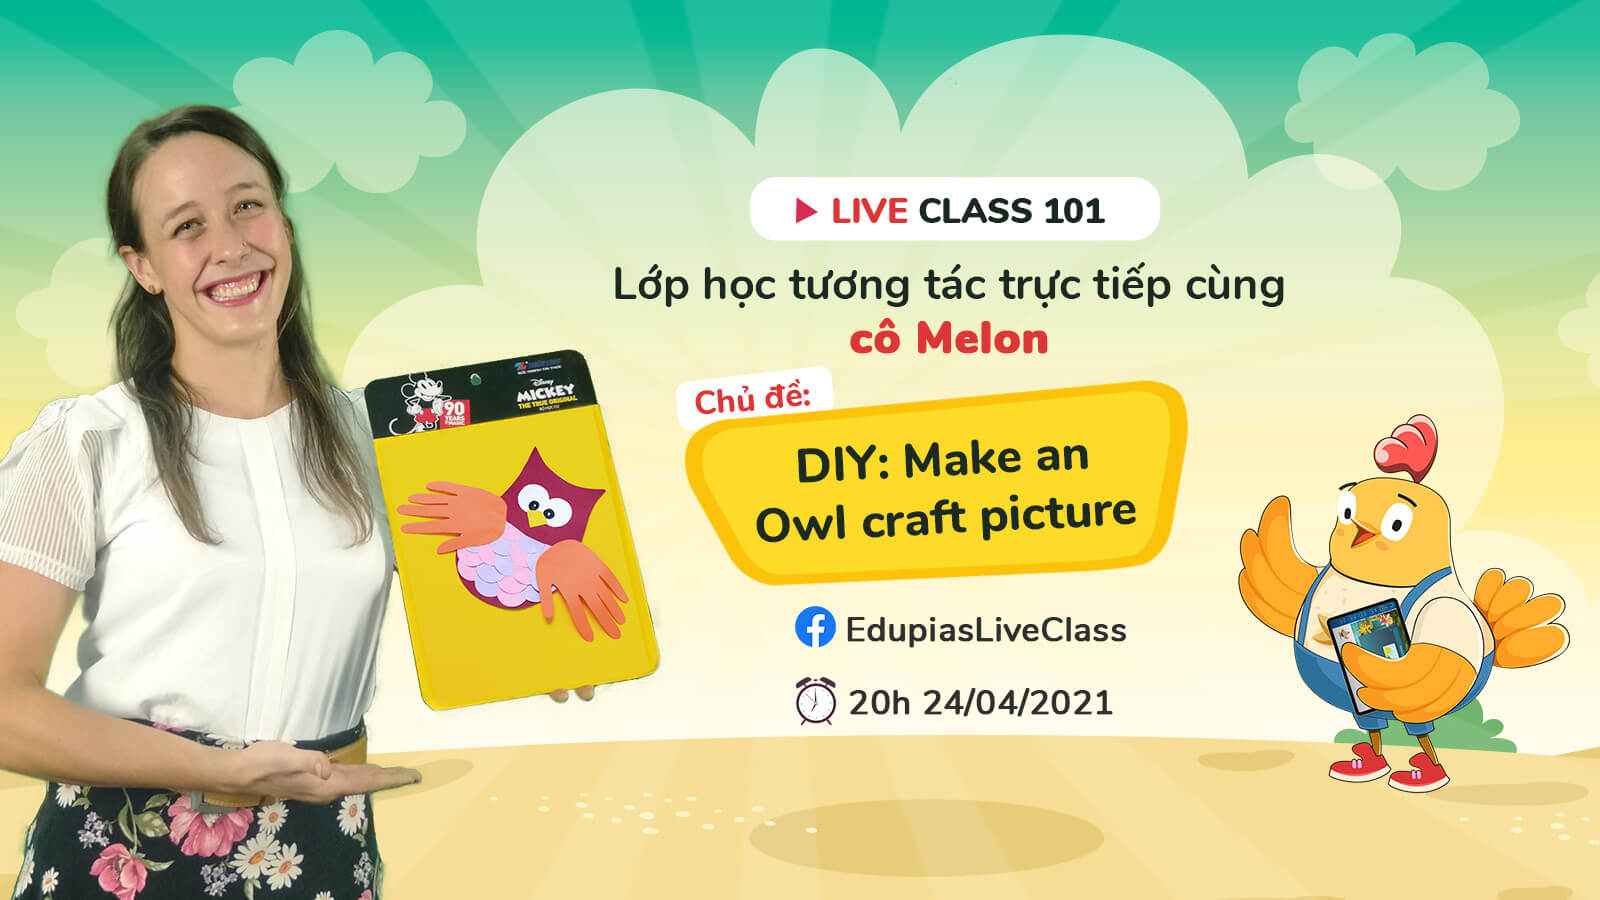 Live class tuần 101 - Chủ đề: DIY: Make an Owl craft picture